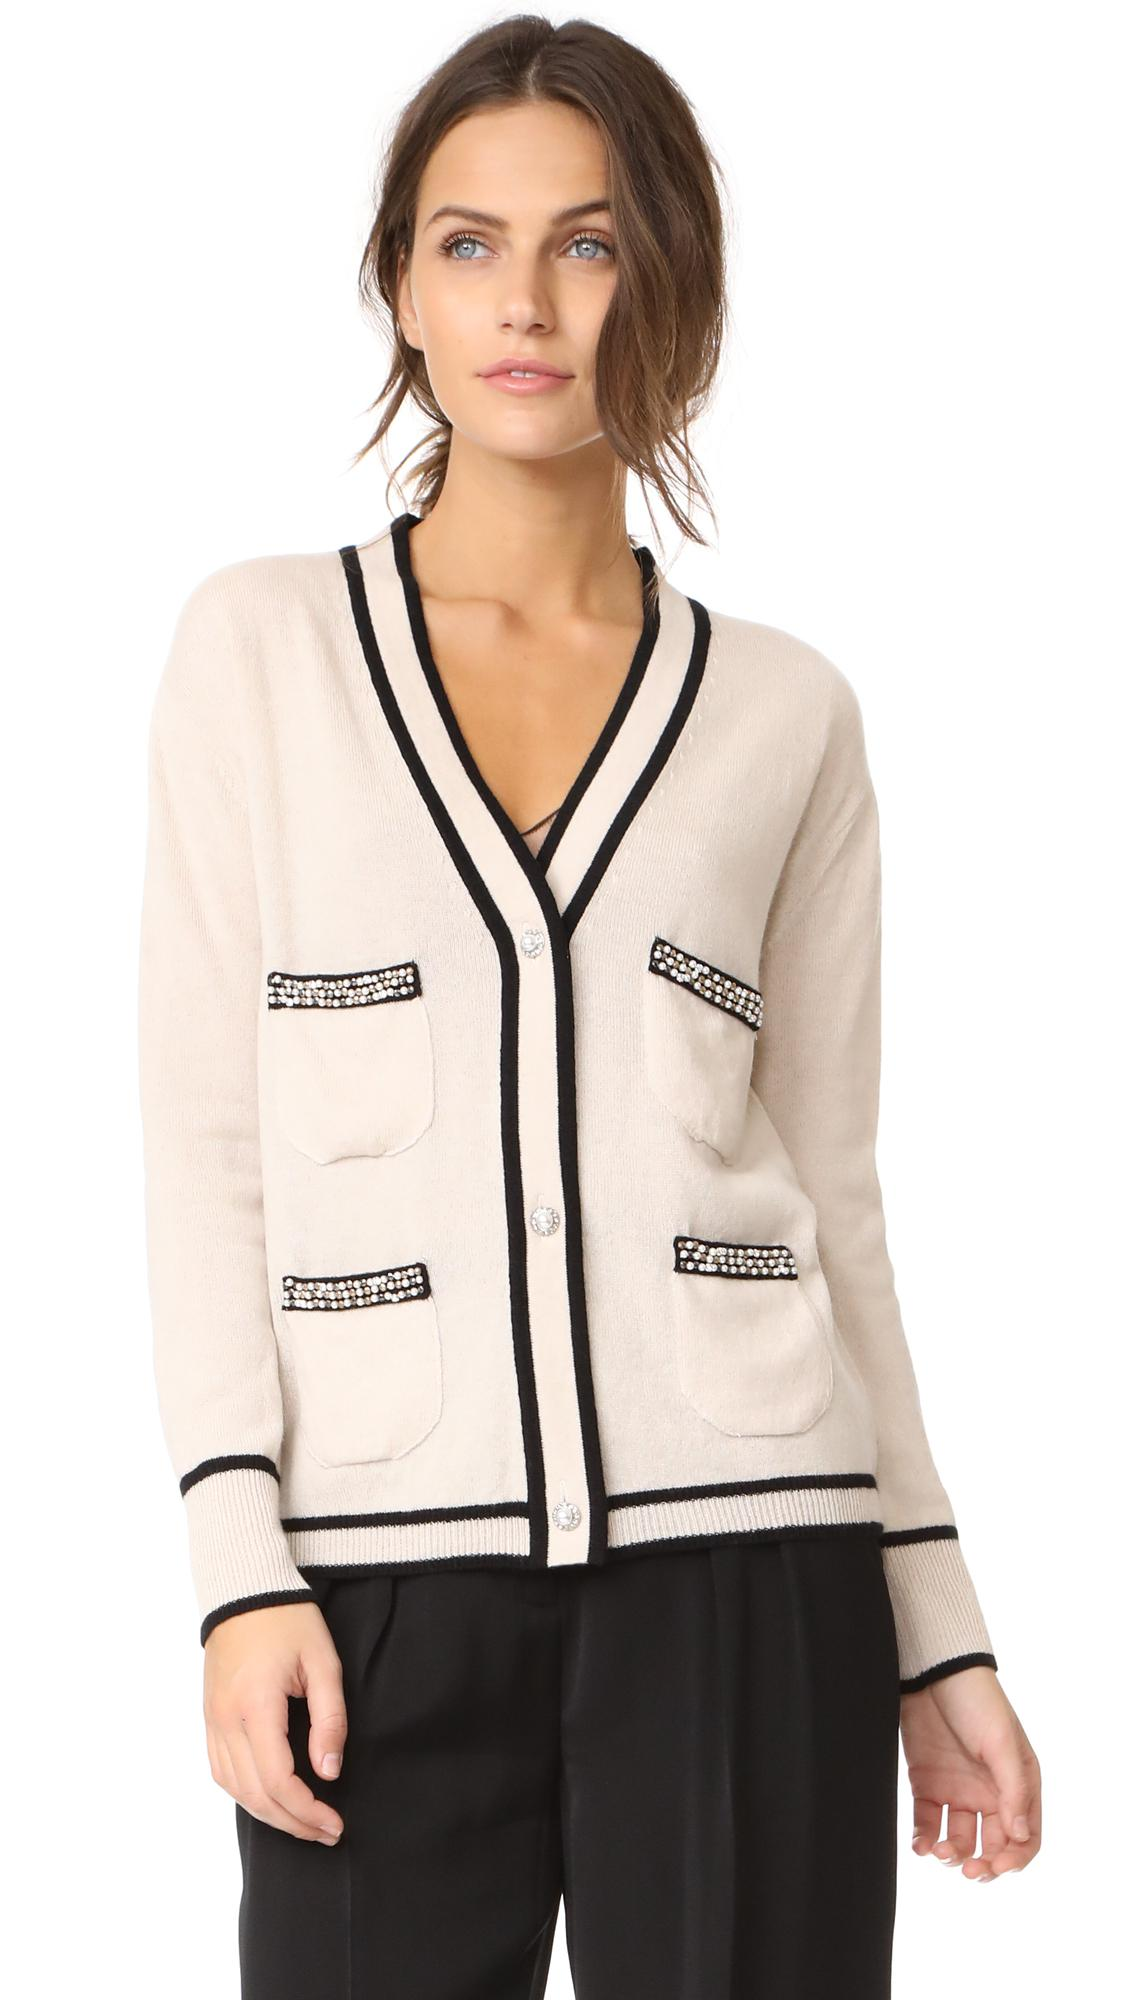 Leur logette Cashmere Beaded Cardigan in White | Lyst